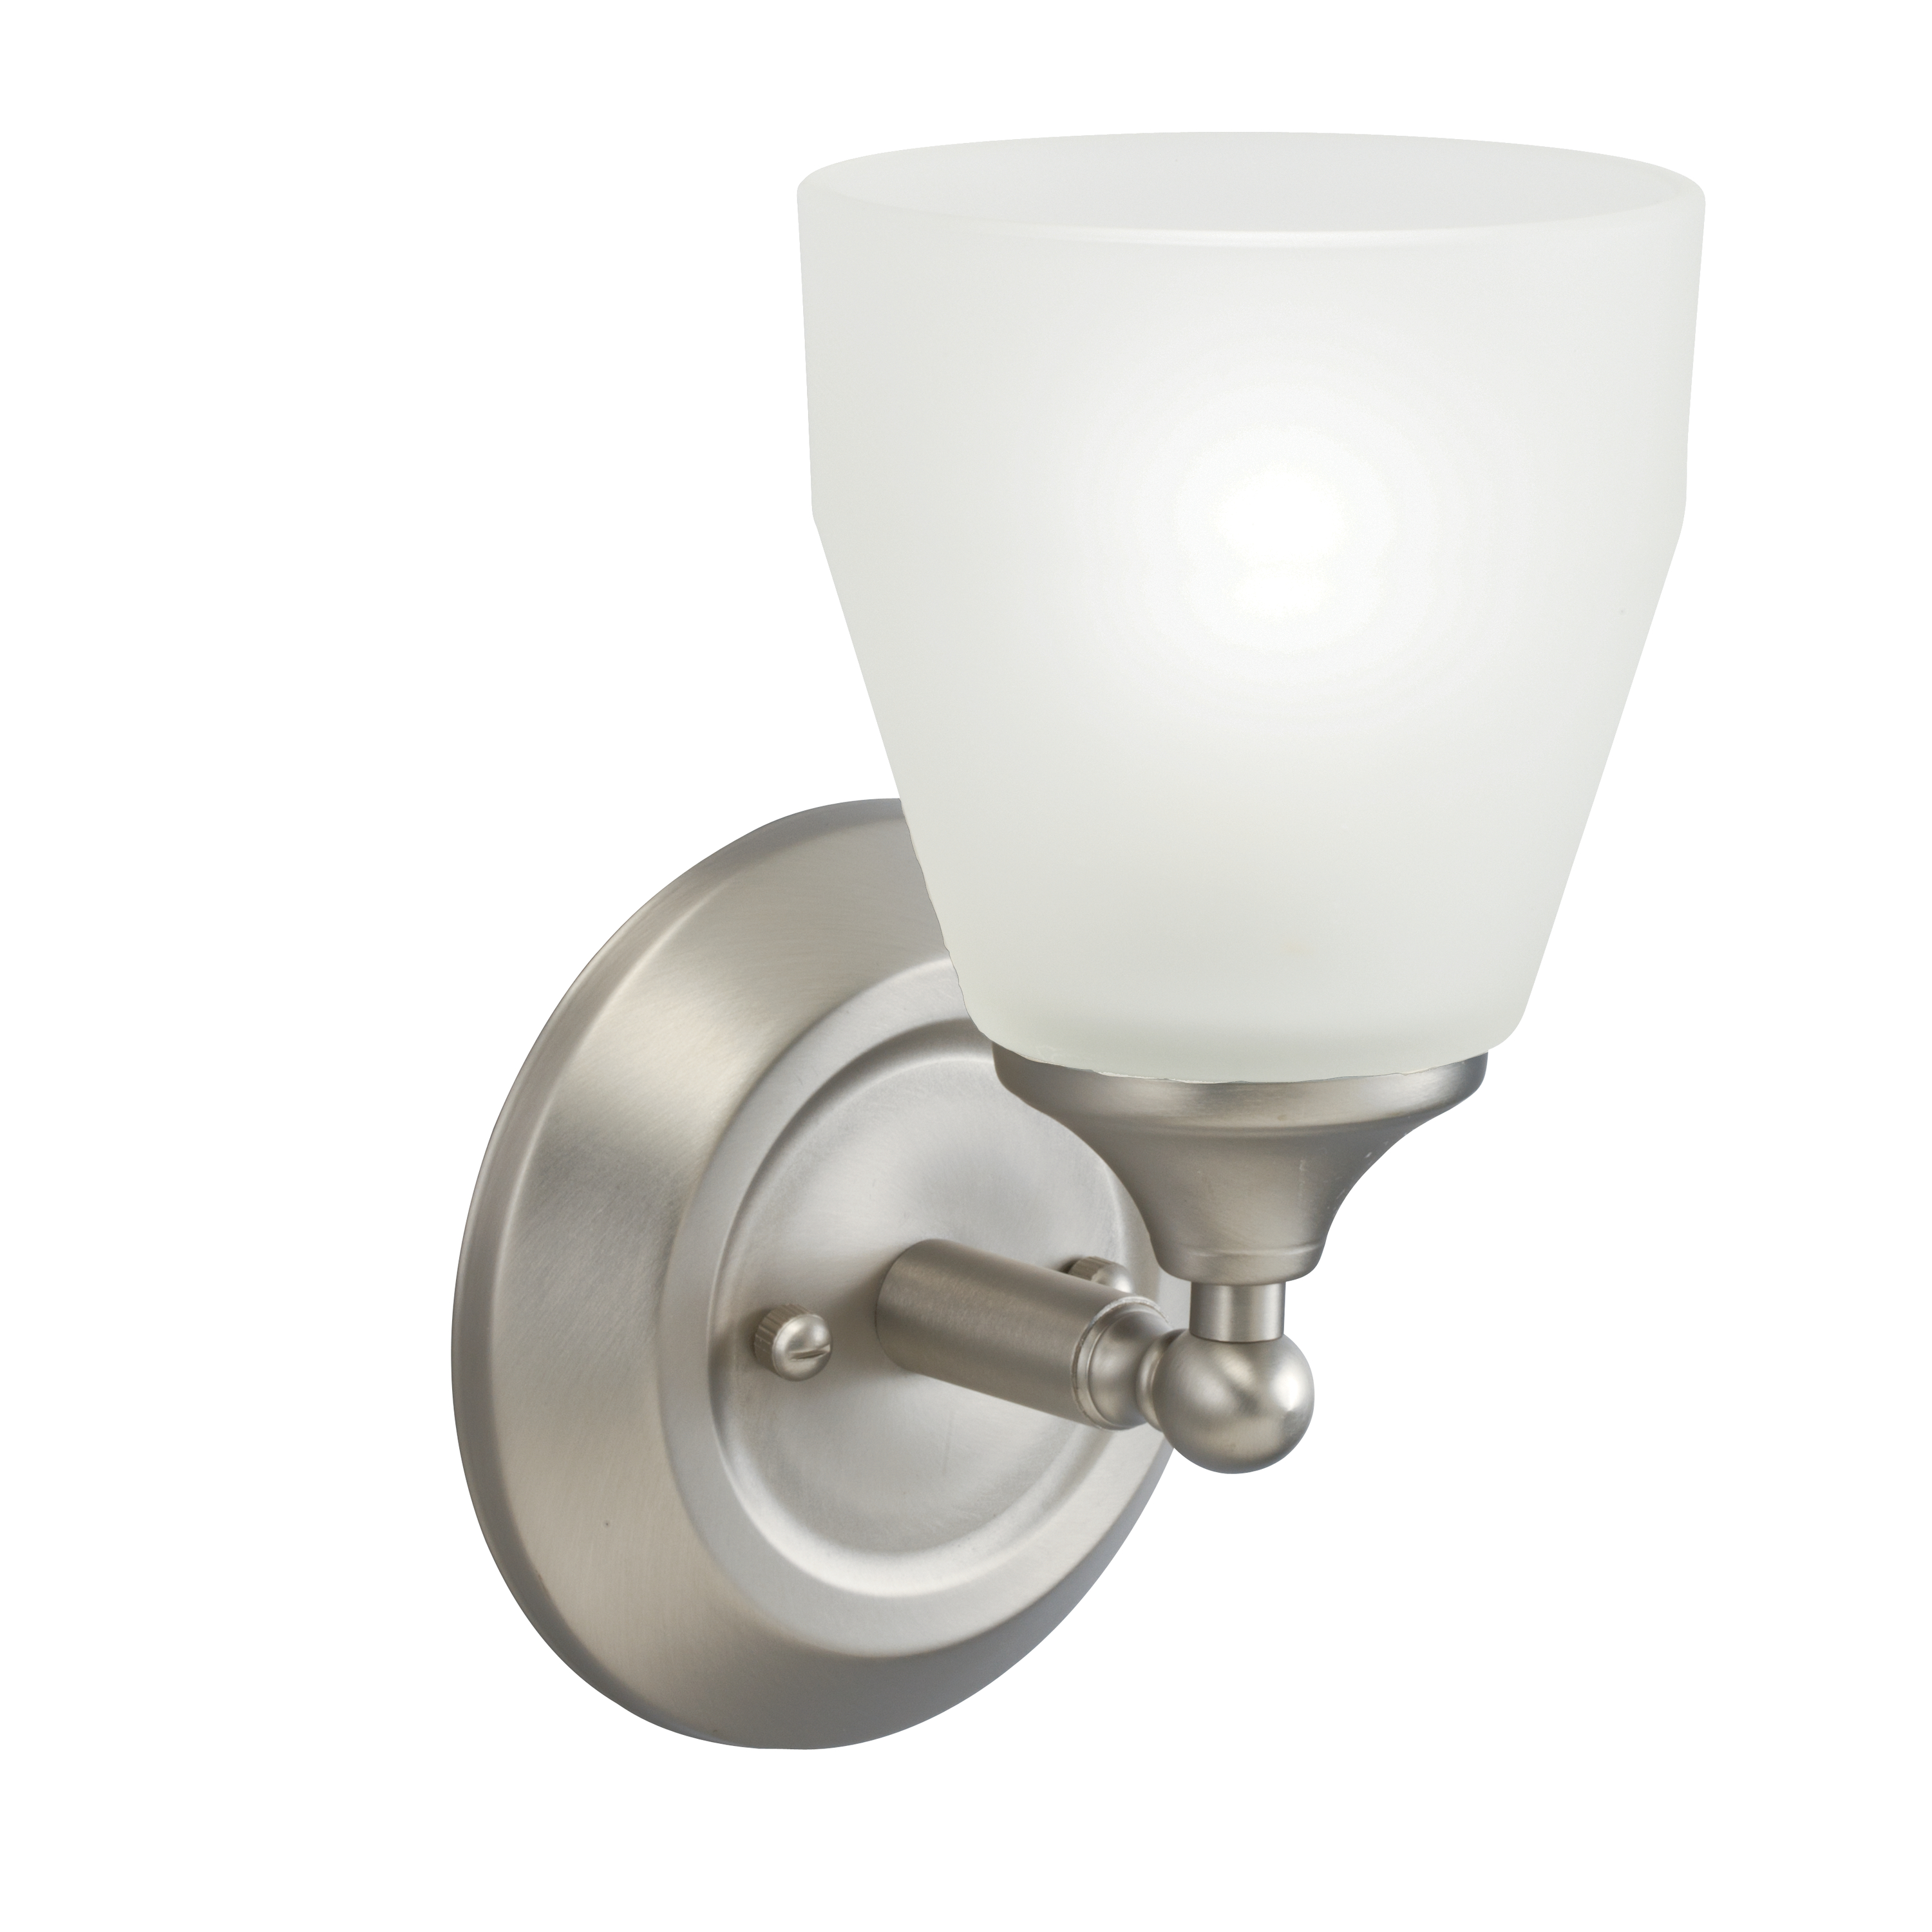 Kichler Ansonia Outdoor Damp Wall Light with Satin Etched Shade - Brushed Nickel (5446NI)